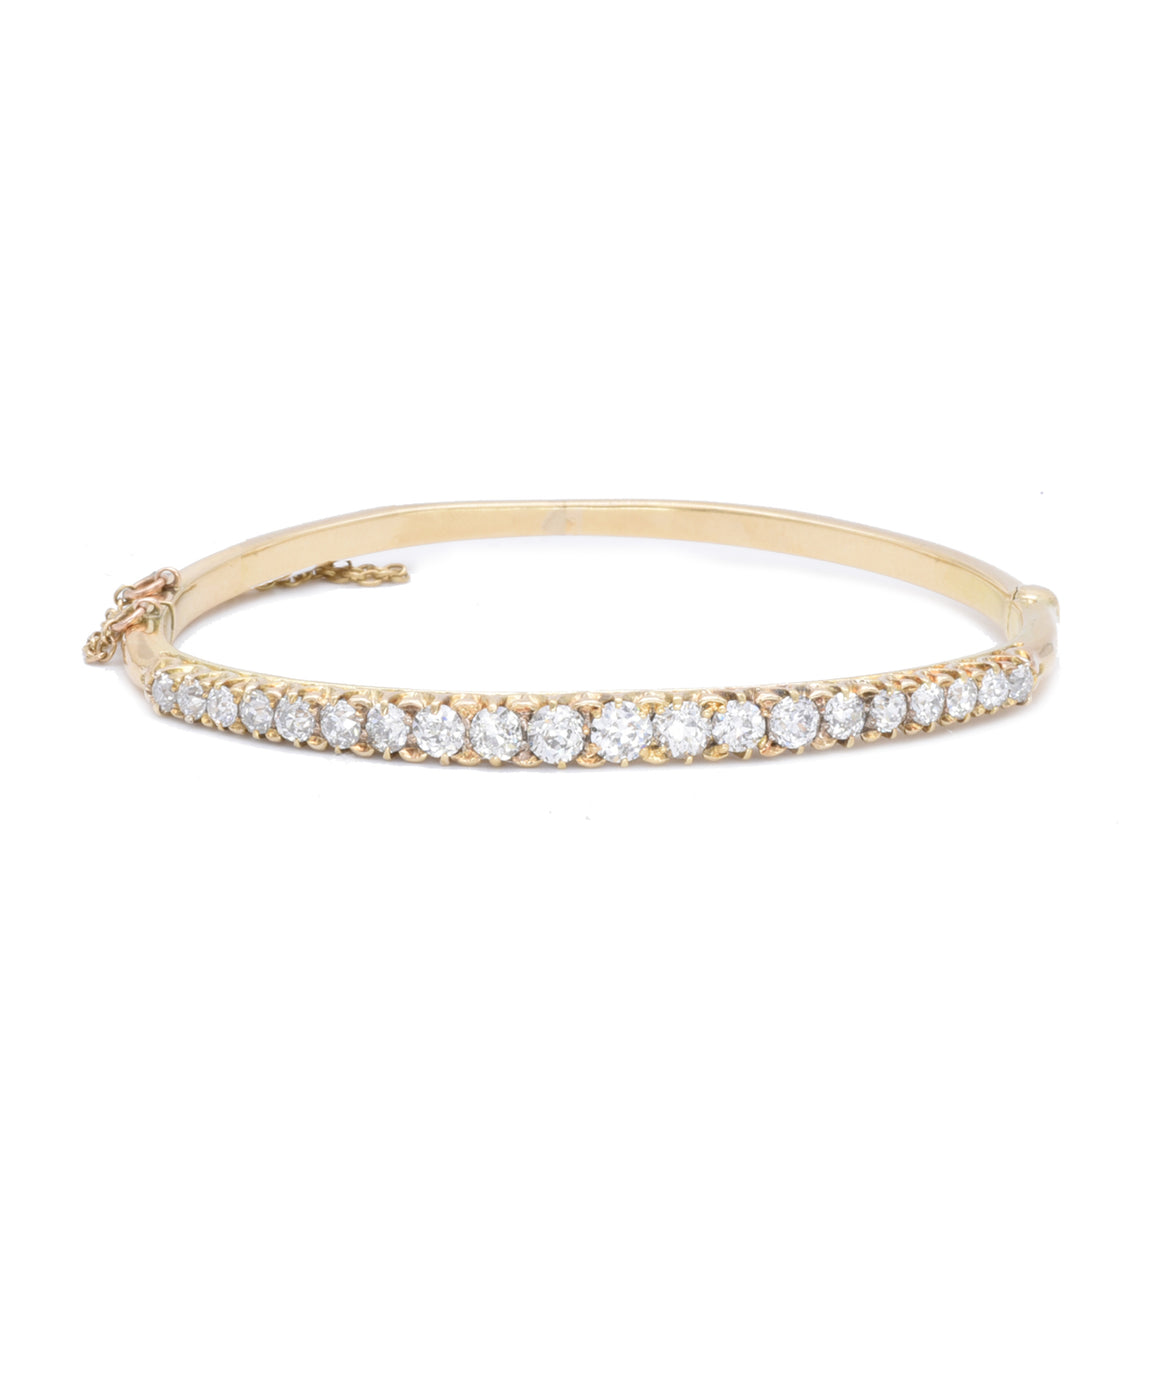 Antique Diamond Bangle Bracelet